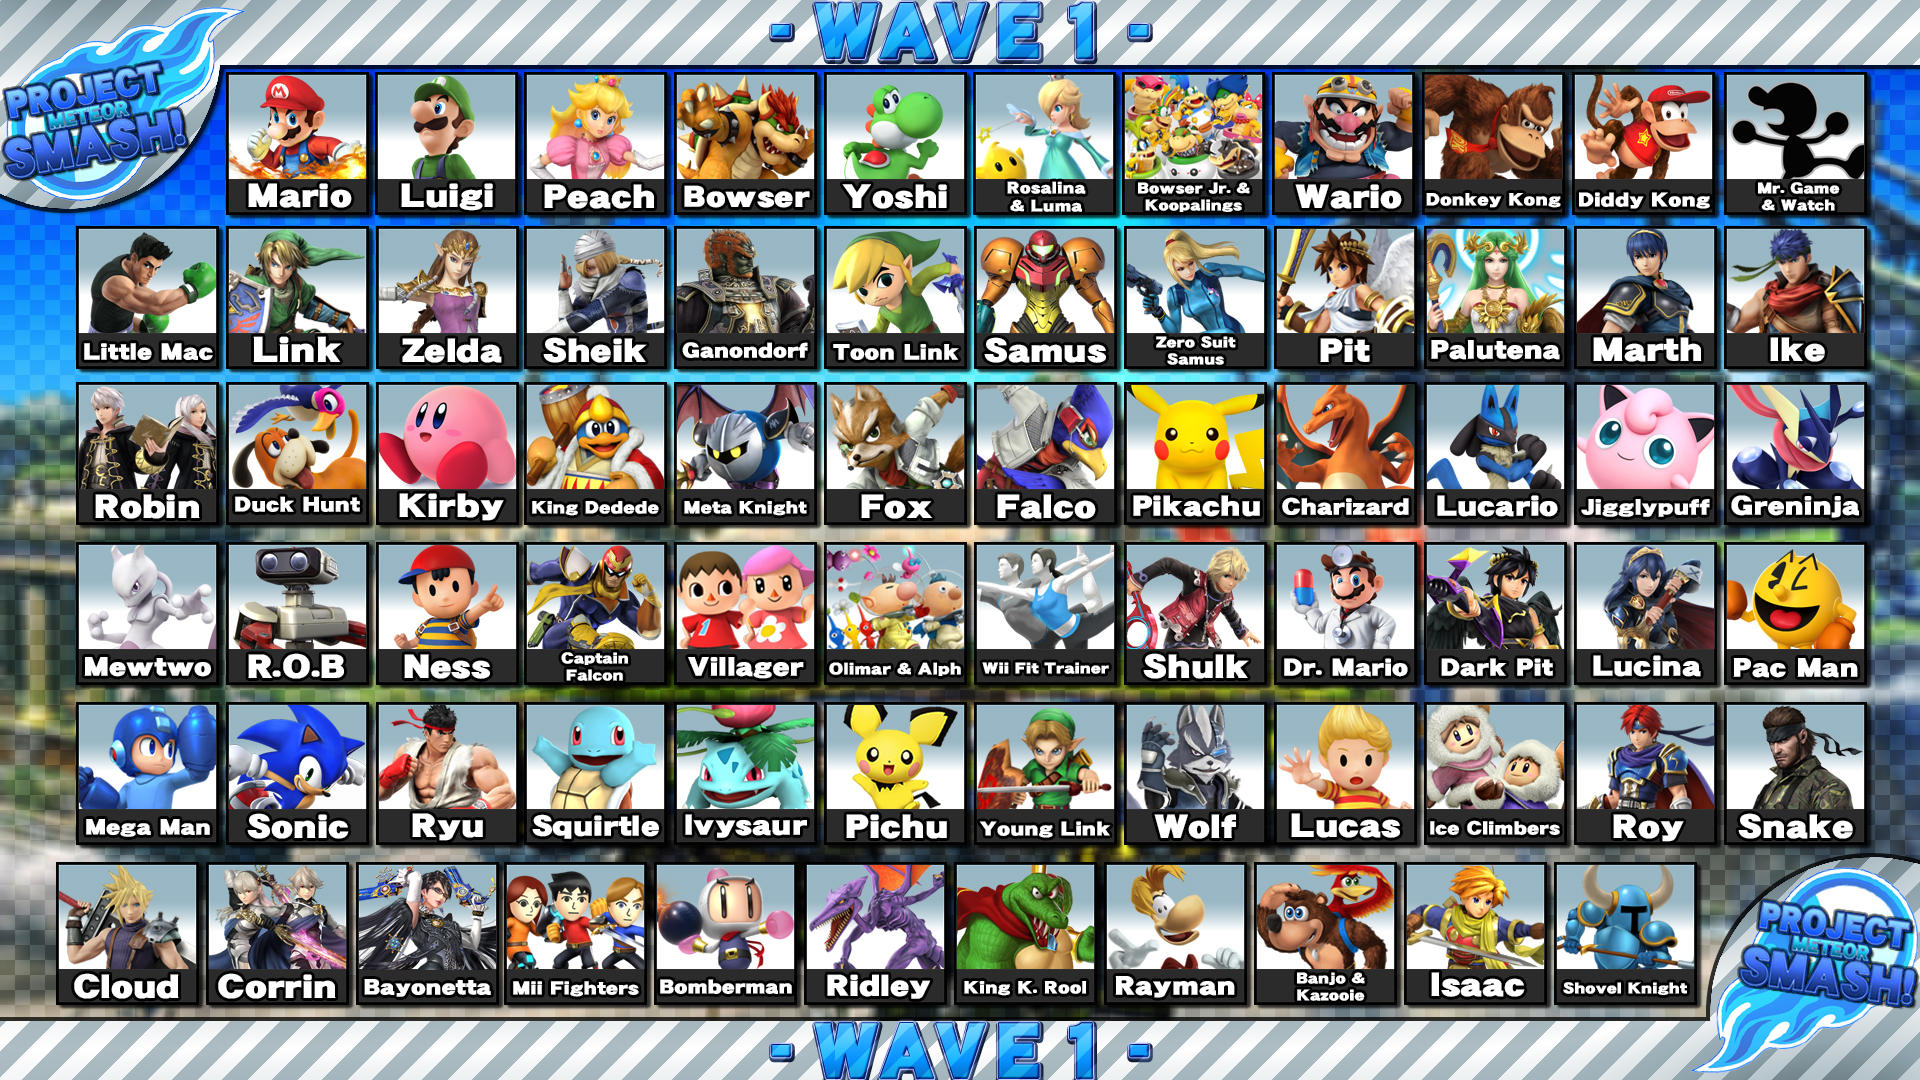 Project Meteor Smash! - Wave 1 (9/28/16) by Leafpenguins